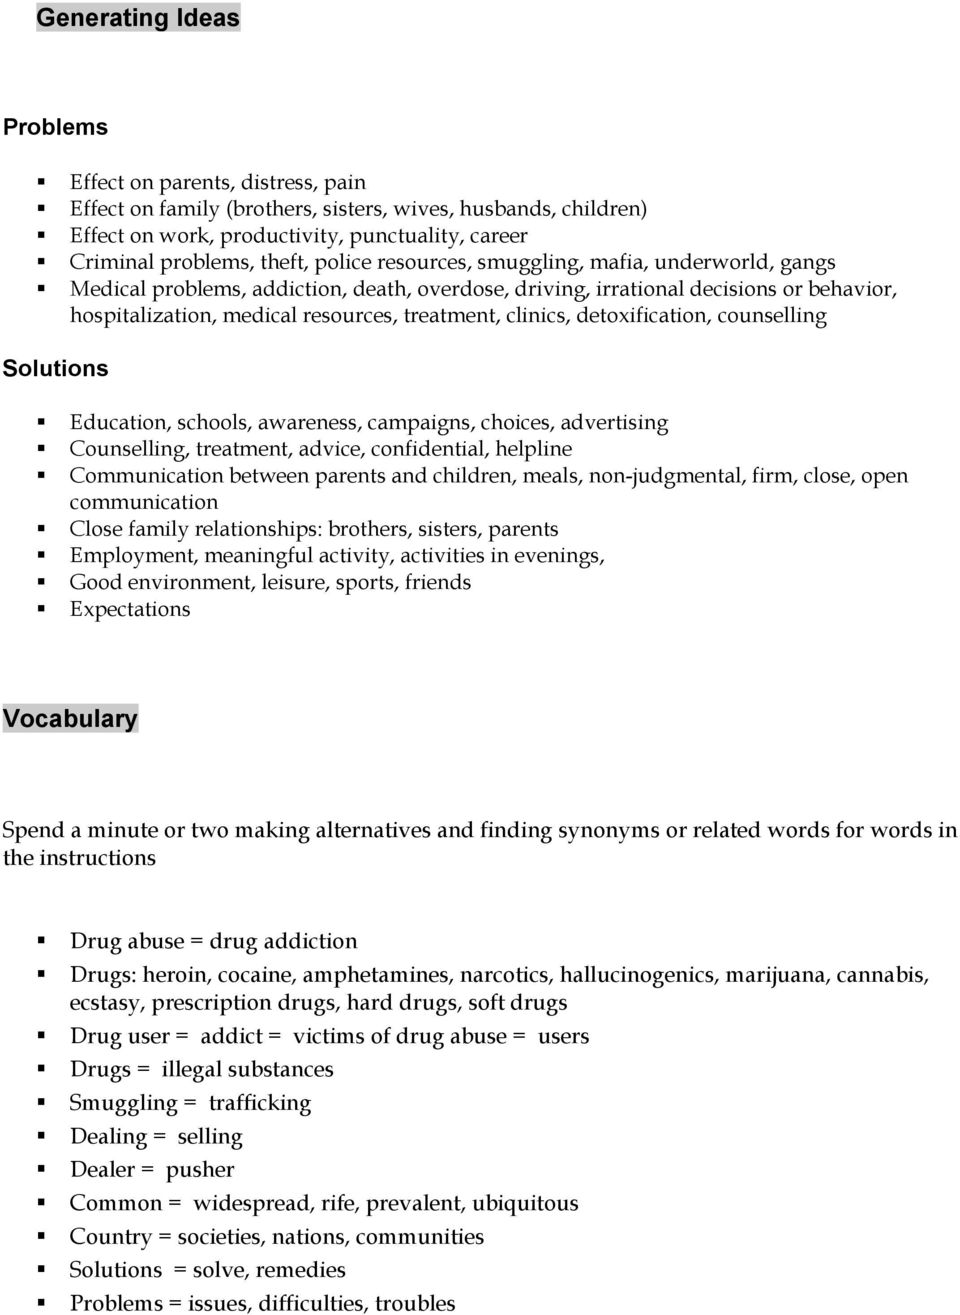 essay on drug addiction problem solution drugs pdf definition  problem solution drugs pdf detoxification counselling solutions education schools awareness campaigns choices advertising counselling